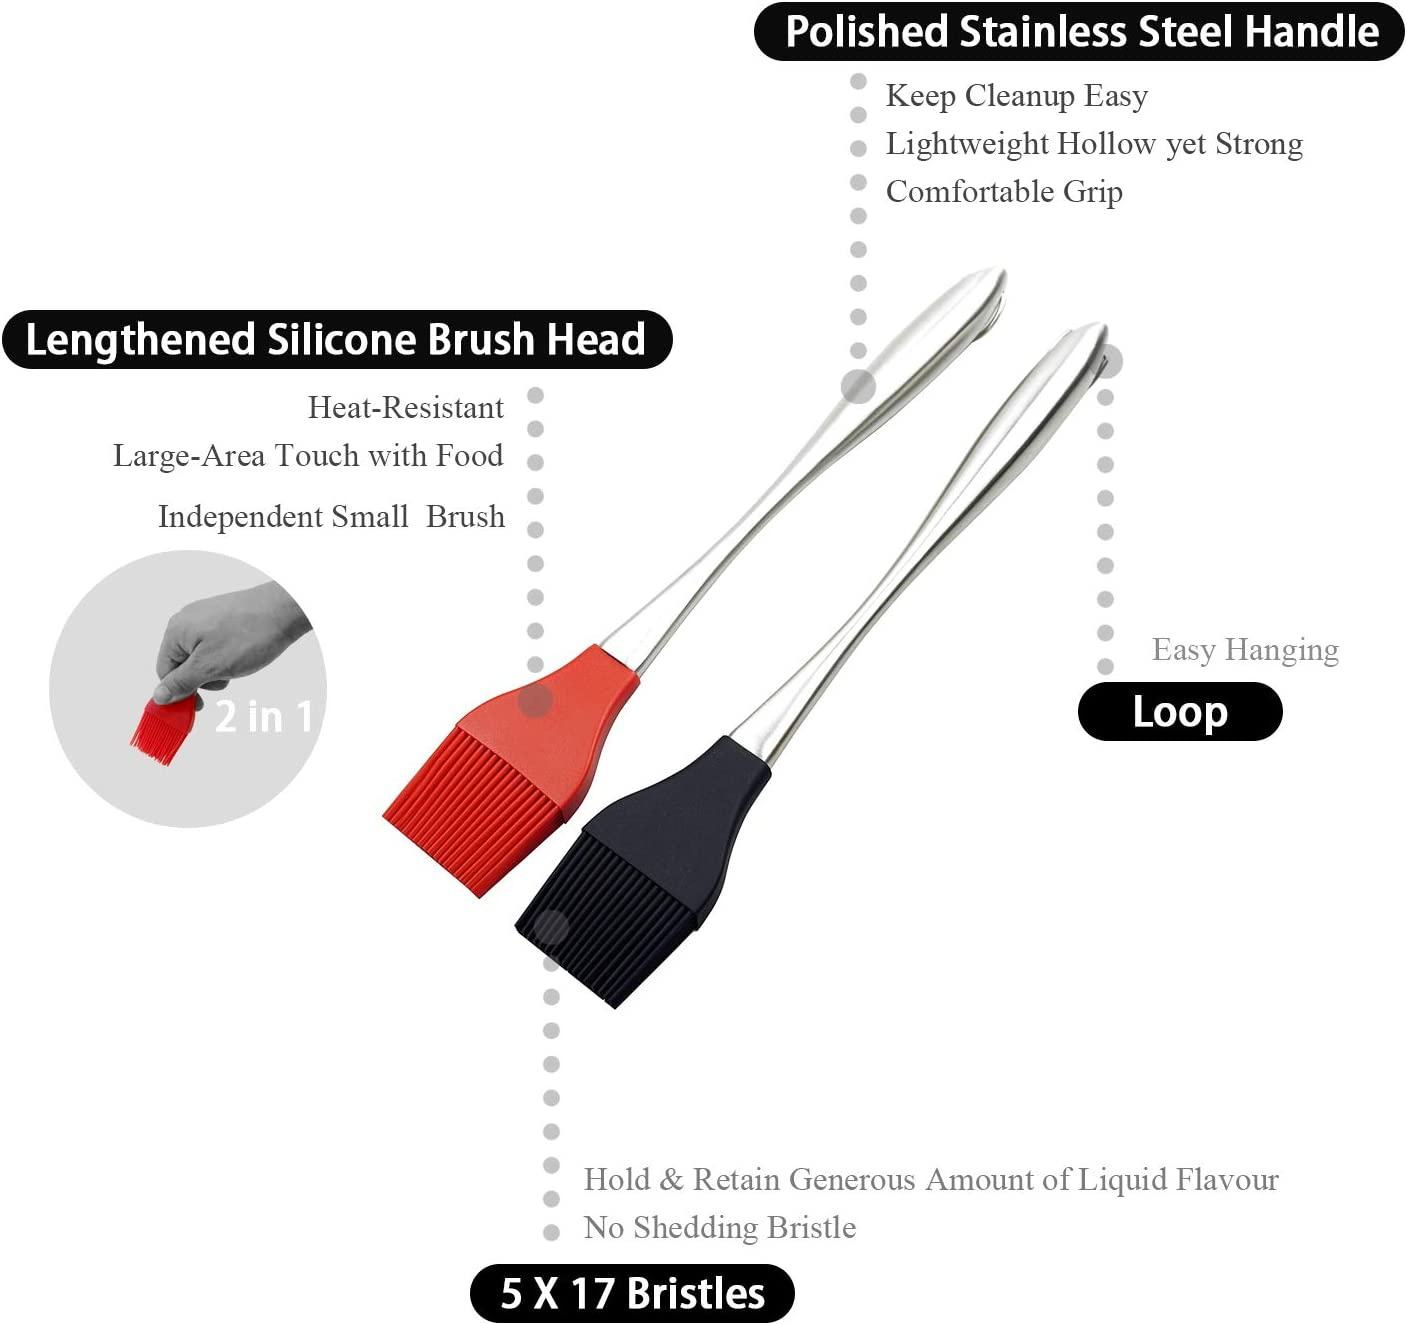 Oil Brush for Grilling and Kitchen Baking Meat or Cake BBQ Pastry 2P Cooking Basting Brush with Stainless Steel Long Handle and Removable Silicone Head Butter and Marinade on Food Apply Sauce